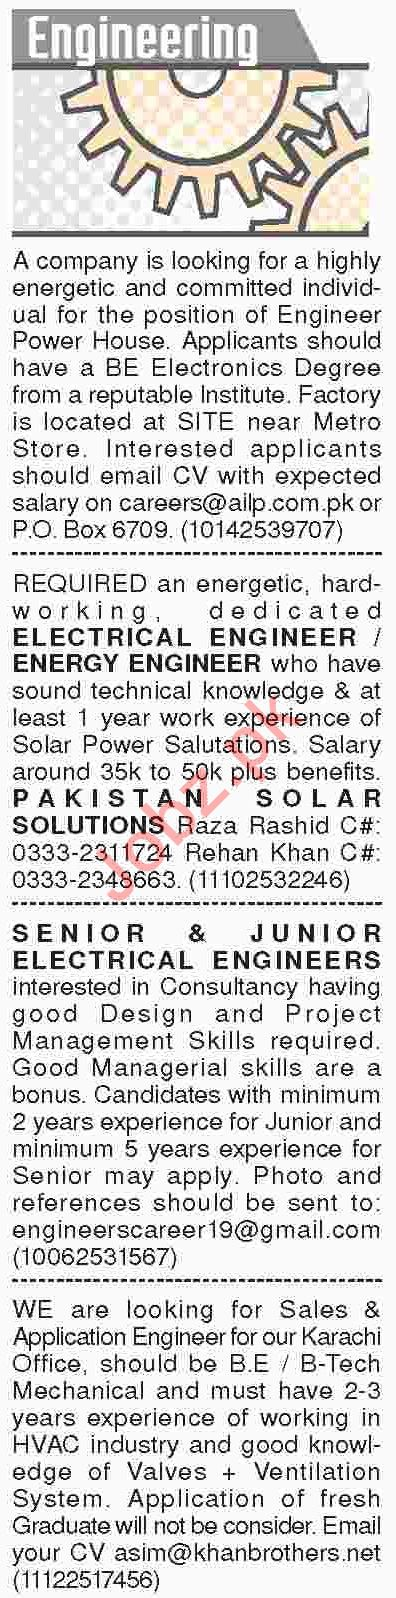 Dawn Sunday Classified Ads 10th March 2019 for Engineering